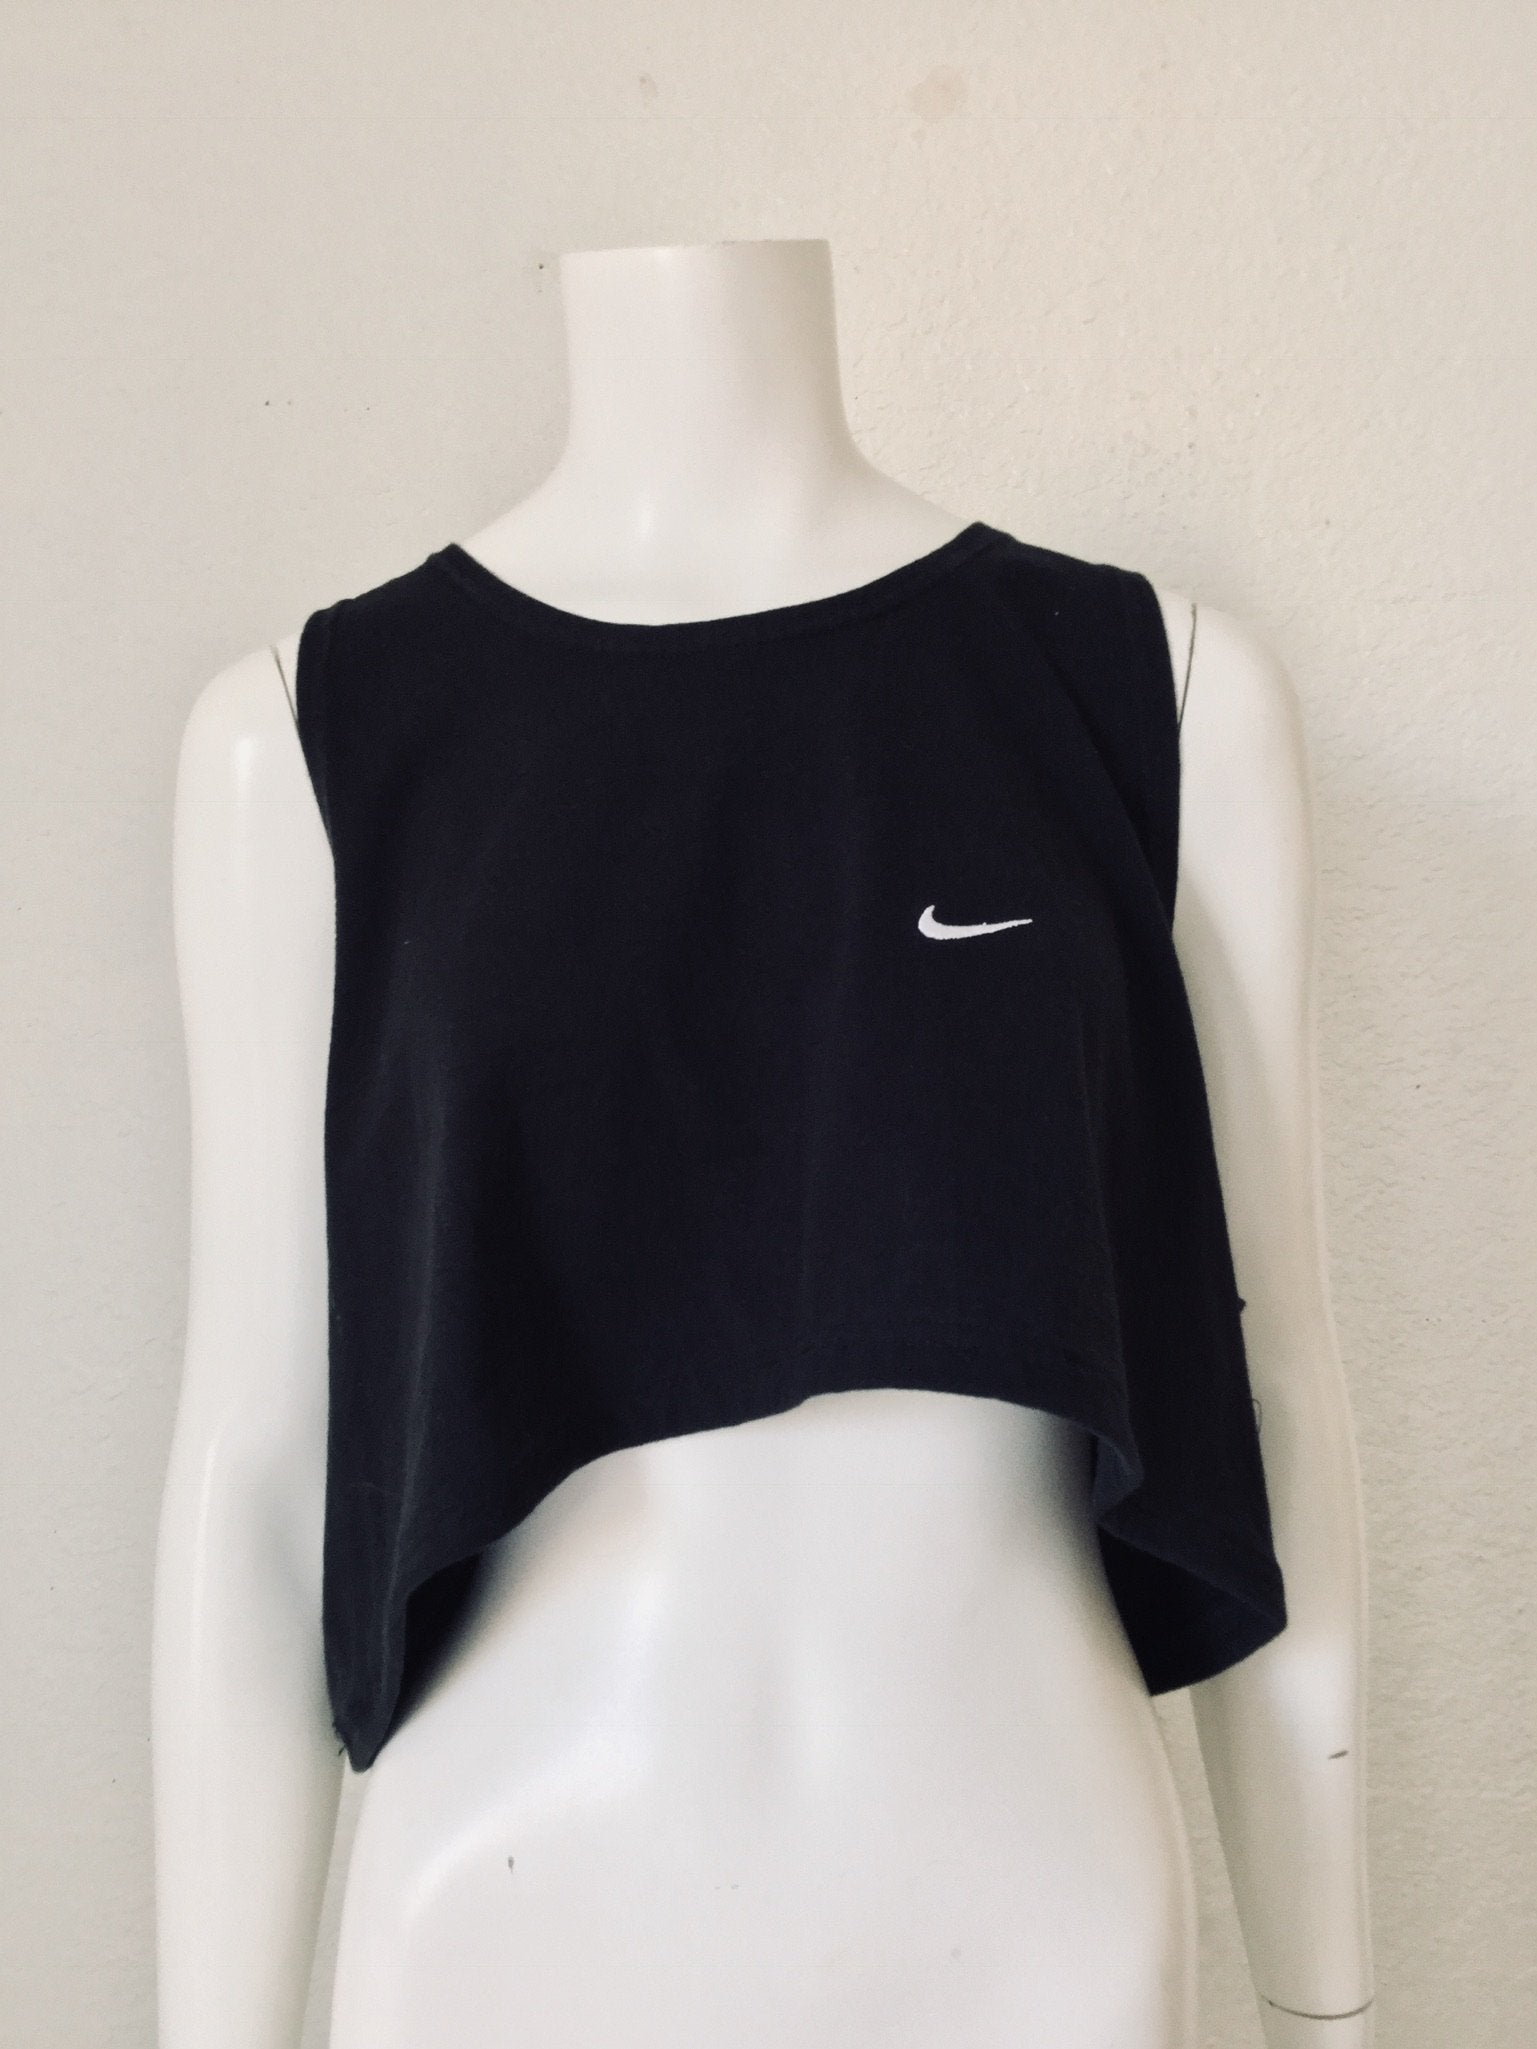 Nike Reworked 90s's Crop Top